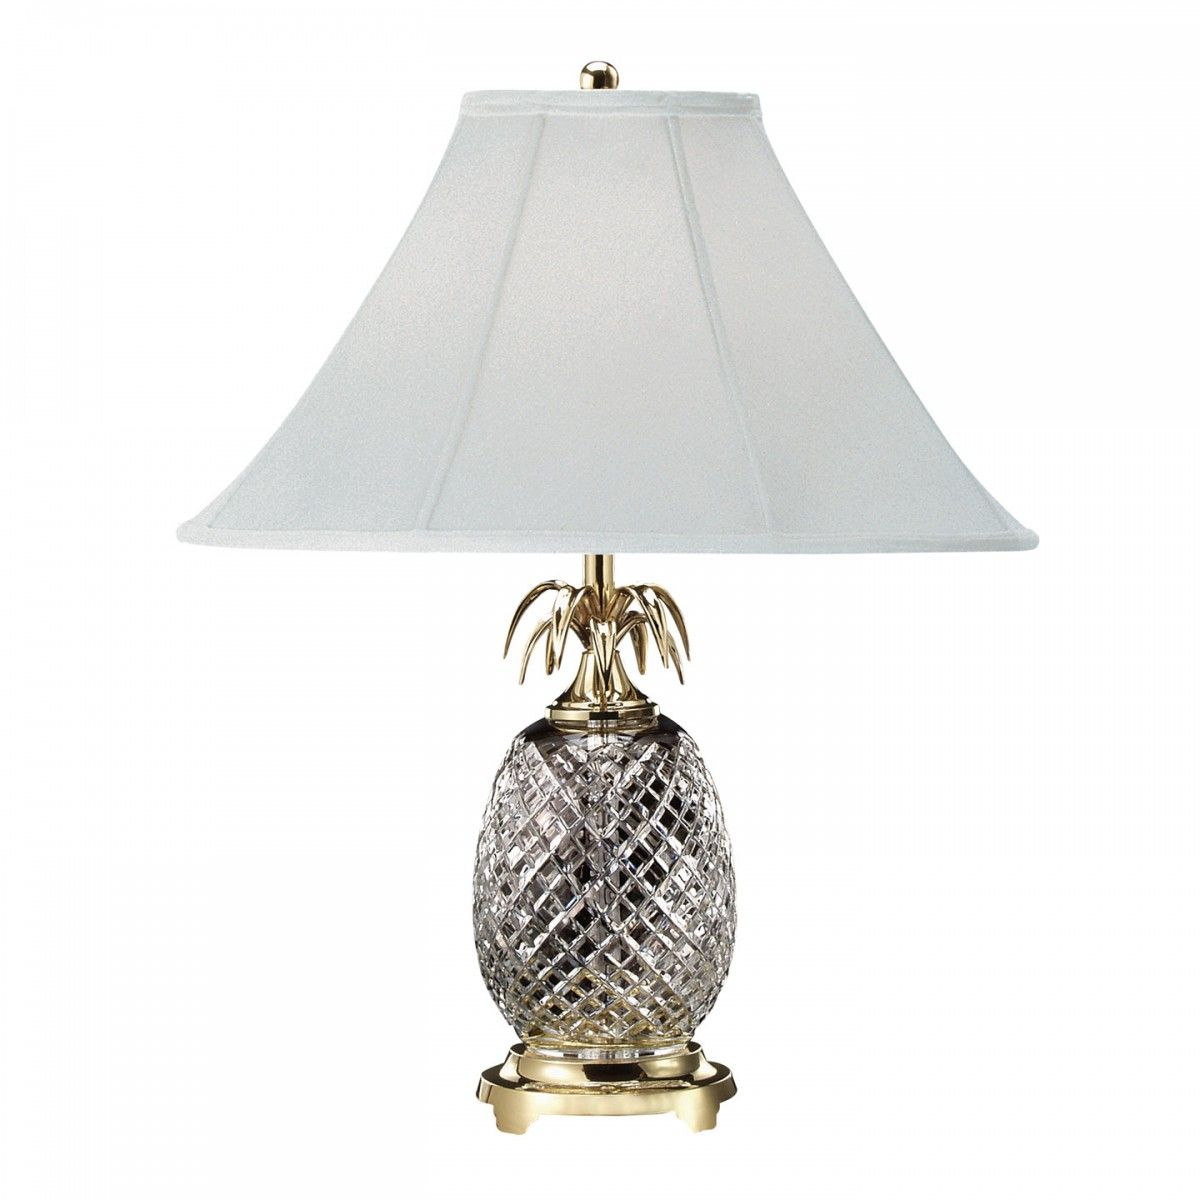 Hospitality 25in Table Lamp Lamp Waterford Lamp Crystal Table Lamps